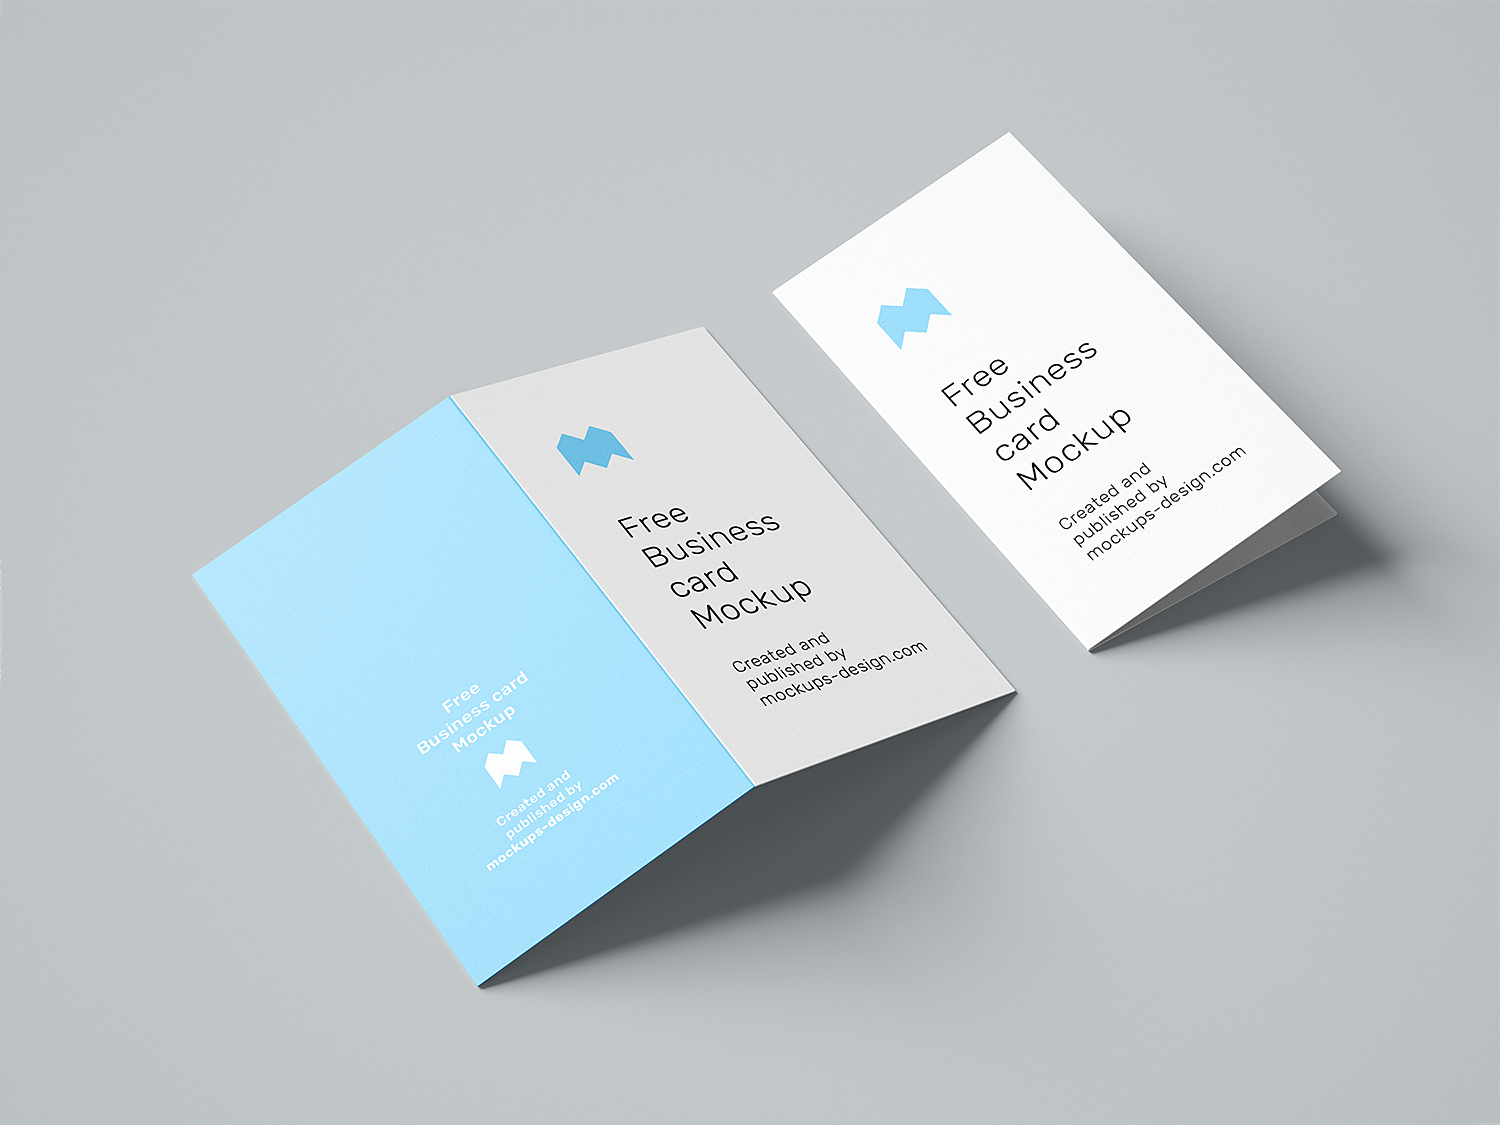 Free Folded Card Template from www.free-mockup.com